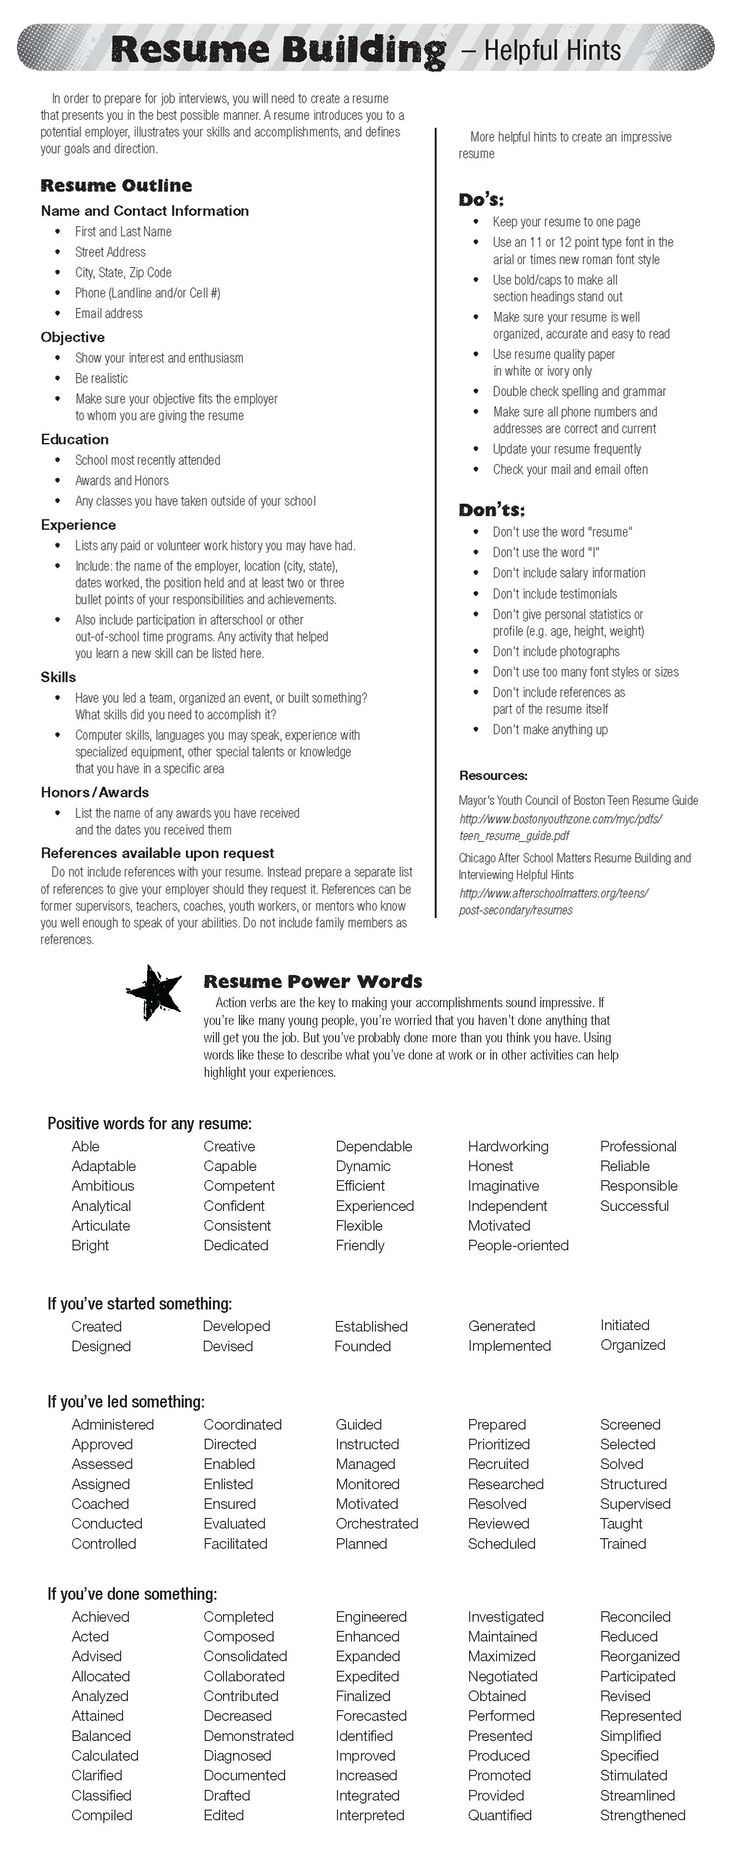 Opposenewapstandardsus  Pretty  Ideas About Resume On Pinterest  Cv Format Resume Cv And  With Inspiring  Ideas About Resume On Pinterest  Cv Format Resume Cv And Resume Templates With Divine Business Development Resumes Also High School Resume No Experience In Addition Resume Sample Download And Cna Objective Resume Examples As Well As Innovative Resume Additionally Completely Free Resume From Pinterestcom With Opposenewapstandardsus  Inspiring  Ideas About Resume On Pinterest  Cv Format Resume Cv And  With Divine  Ideas About Resume On Pinterest  Cv Format Resume Cv And Resume Templates And Pretty Business Development Resumes Also High School Resume No Experience In Addition Resume Sample Download From Pinterestcom